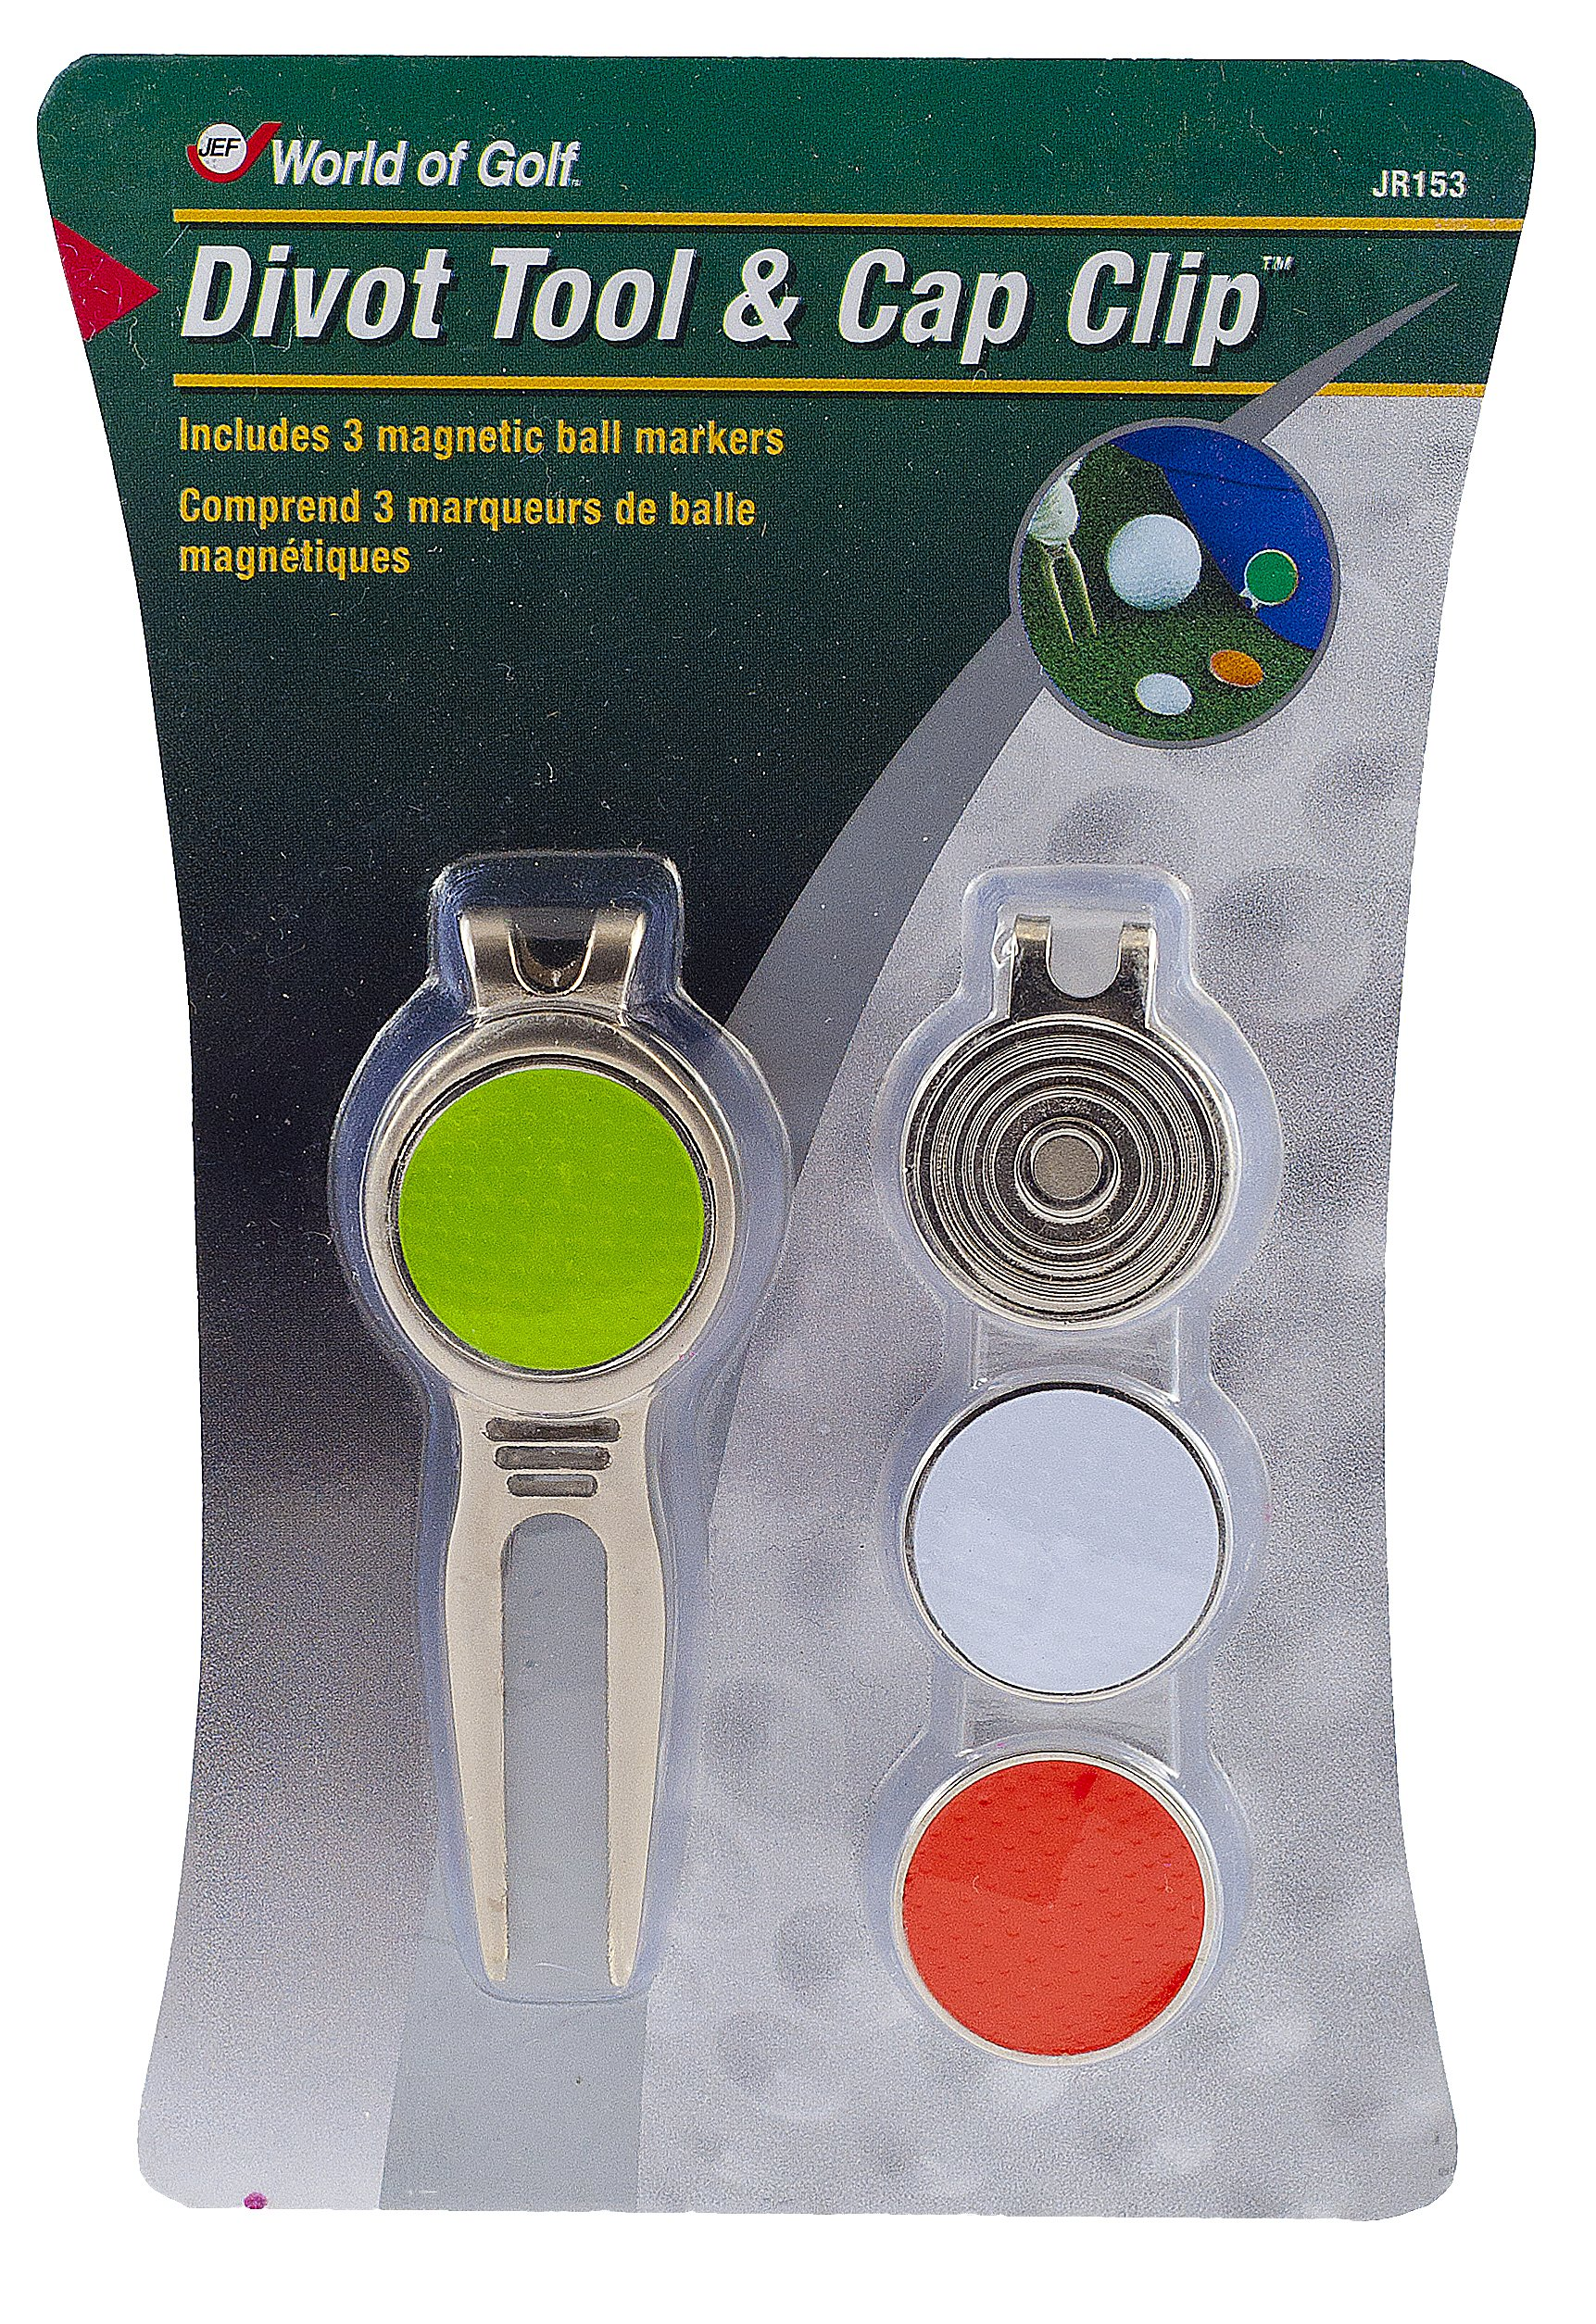 JEF World of Golf JR153 Metal Divot Golf Tool and Cap Clip with 3 Ball Markers by JEF WORLD OF GOLF